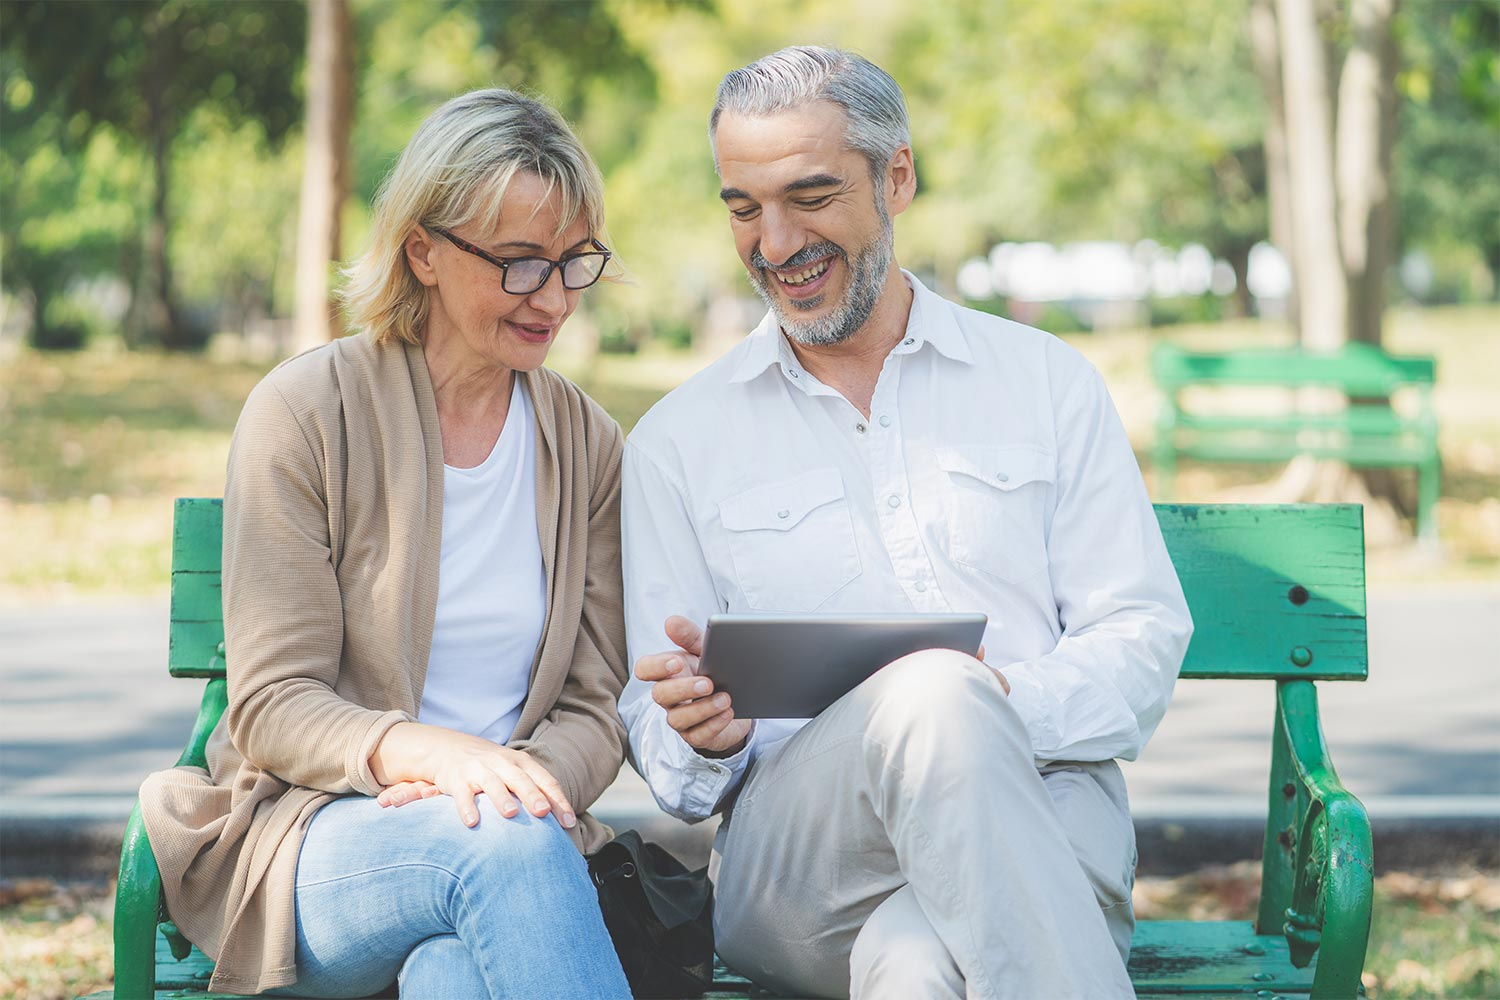 A Senior Couple Is Chatting Online